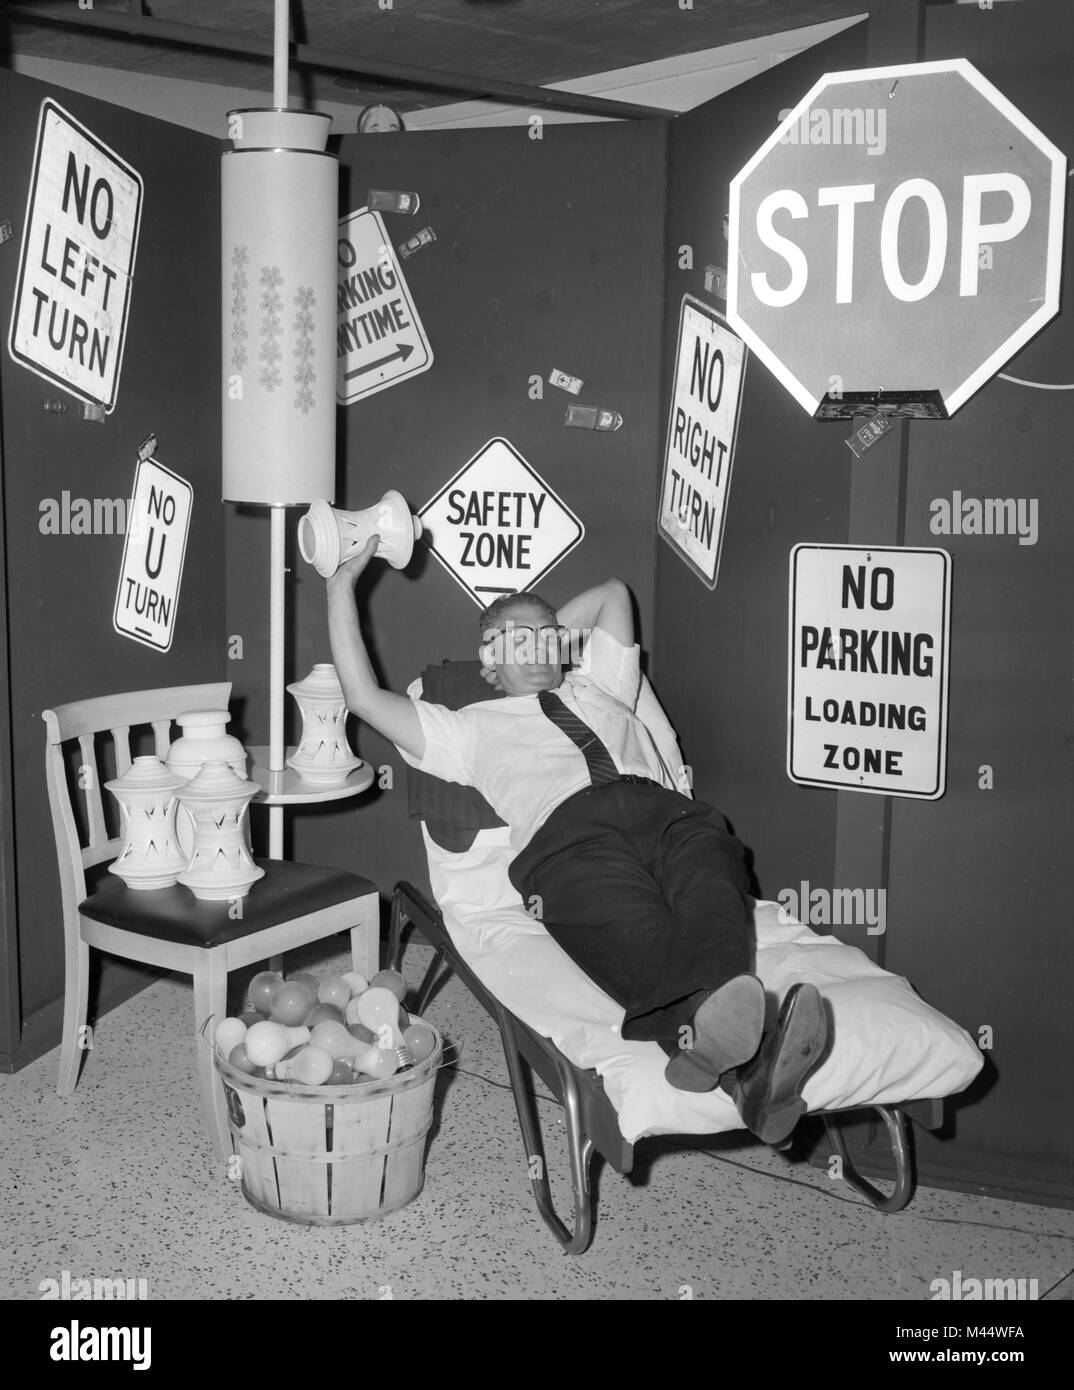 Chicago hotel room outfitted for destruction for lodgers to throw things around after a stressful day, ca. 1960. - Stock Image